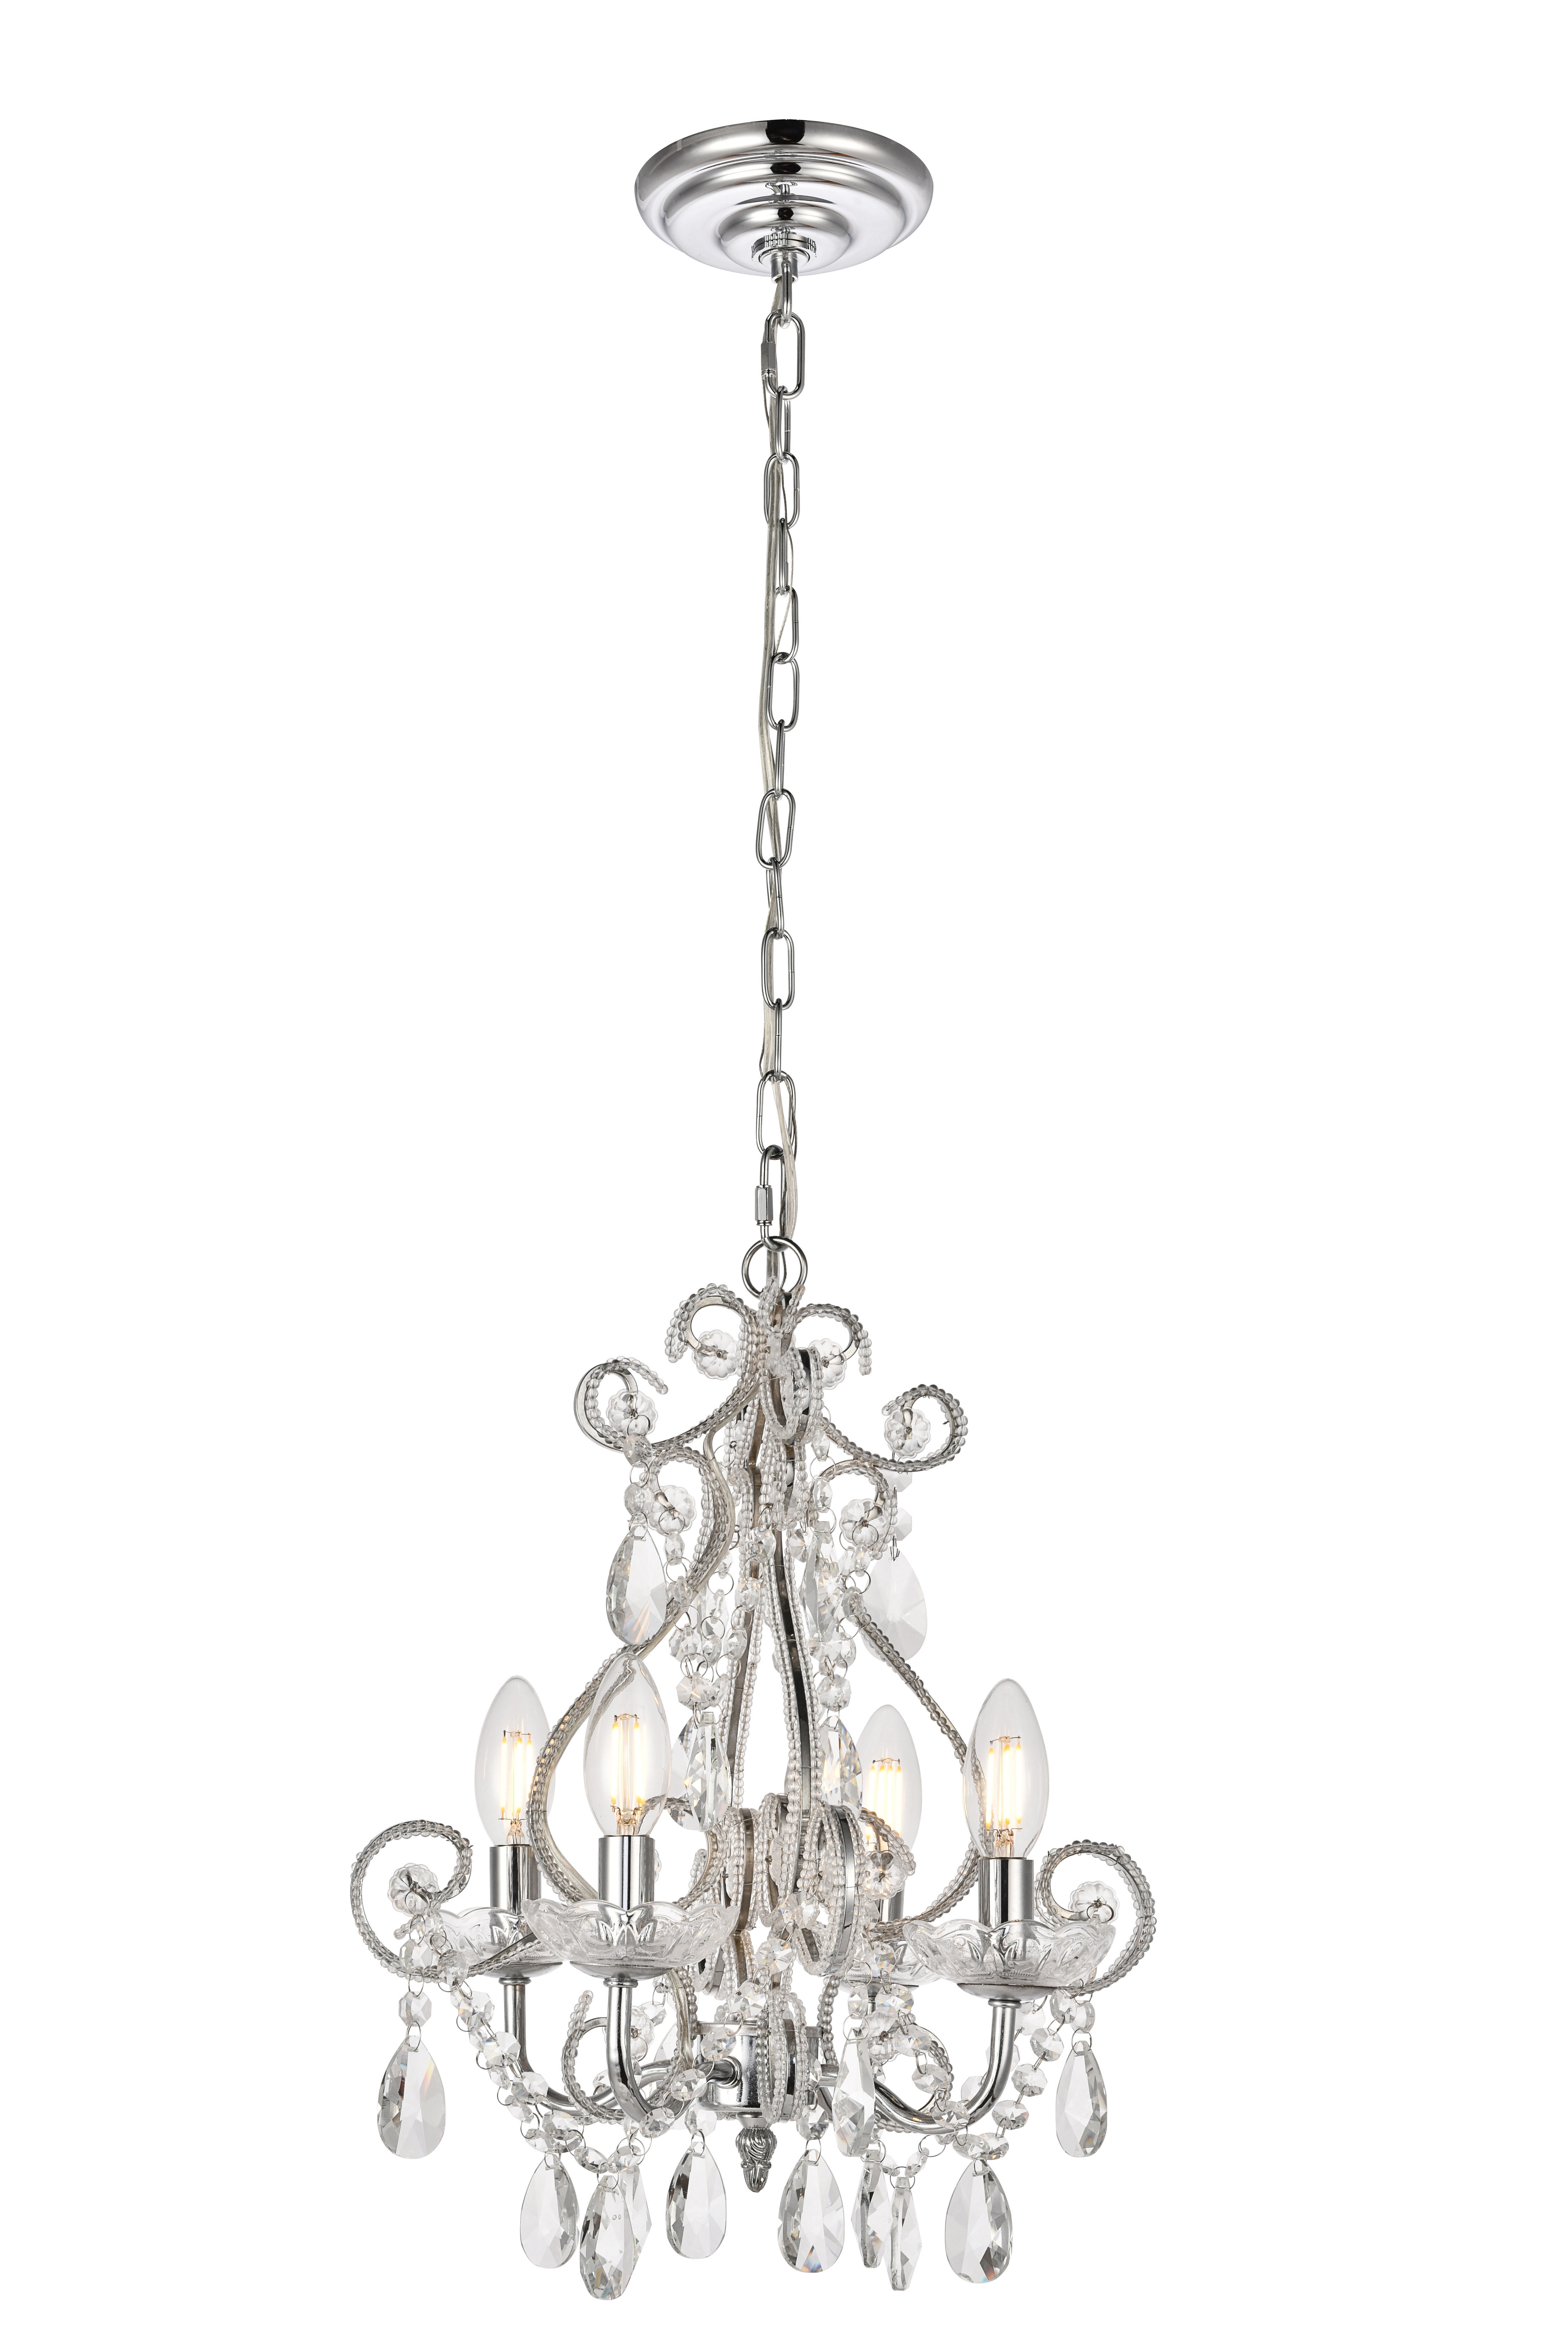 Well Known Aldora 4 Light Candle Style Chandeliers Regarding Burcott 4 Light Candle Style Chandelier (View 3 of 25)